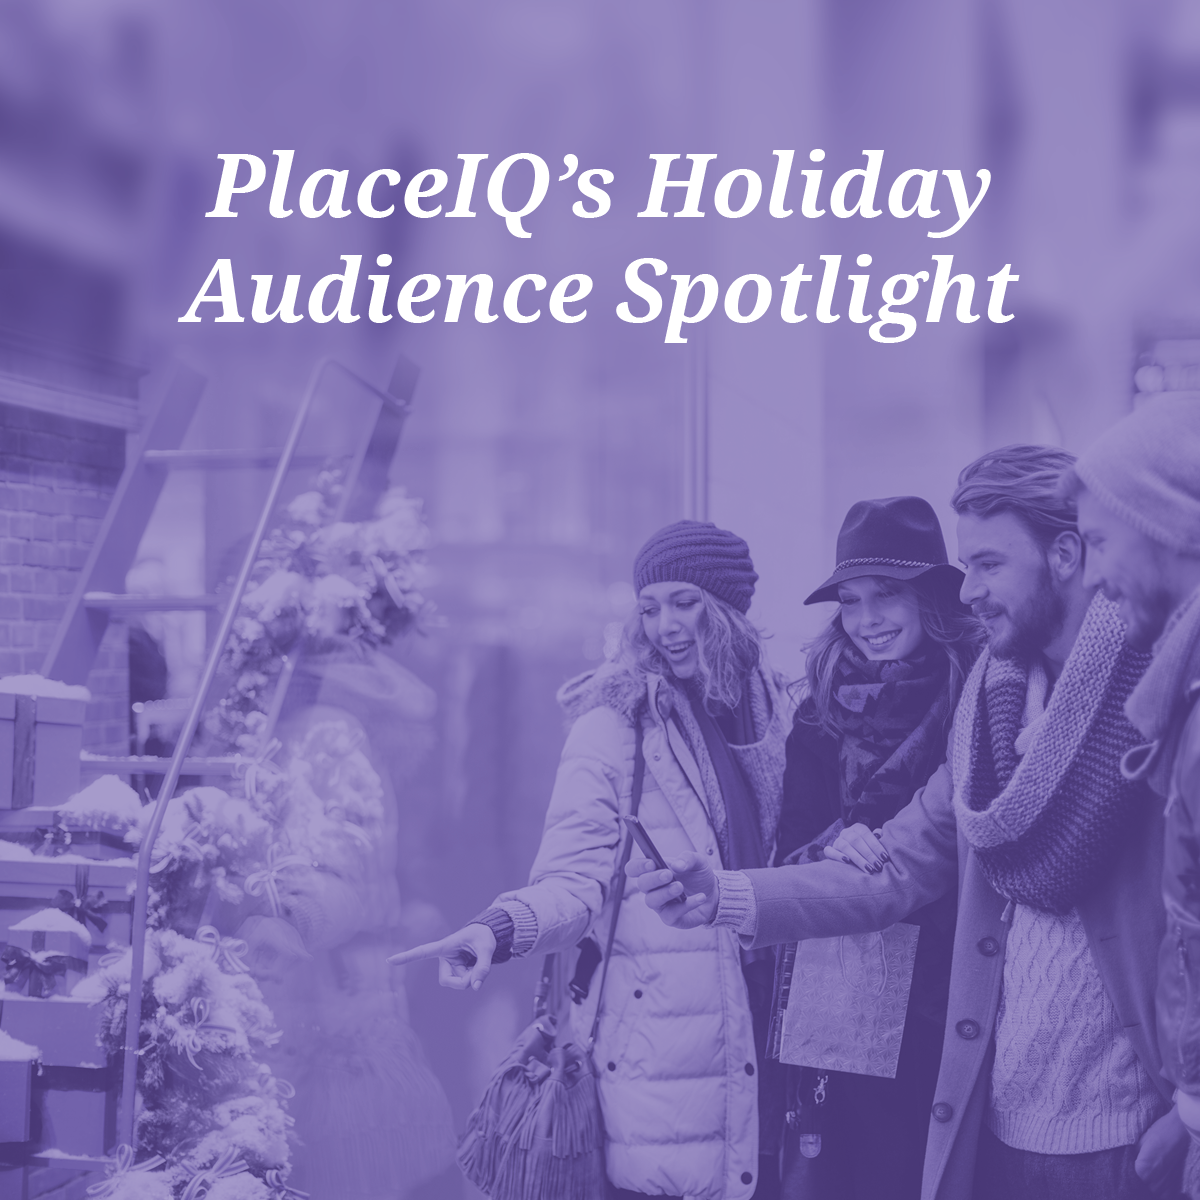 PlaceIQ's Holiday Audience Spotlight